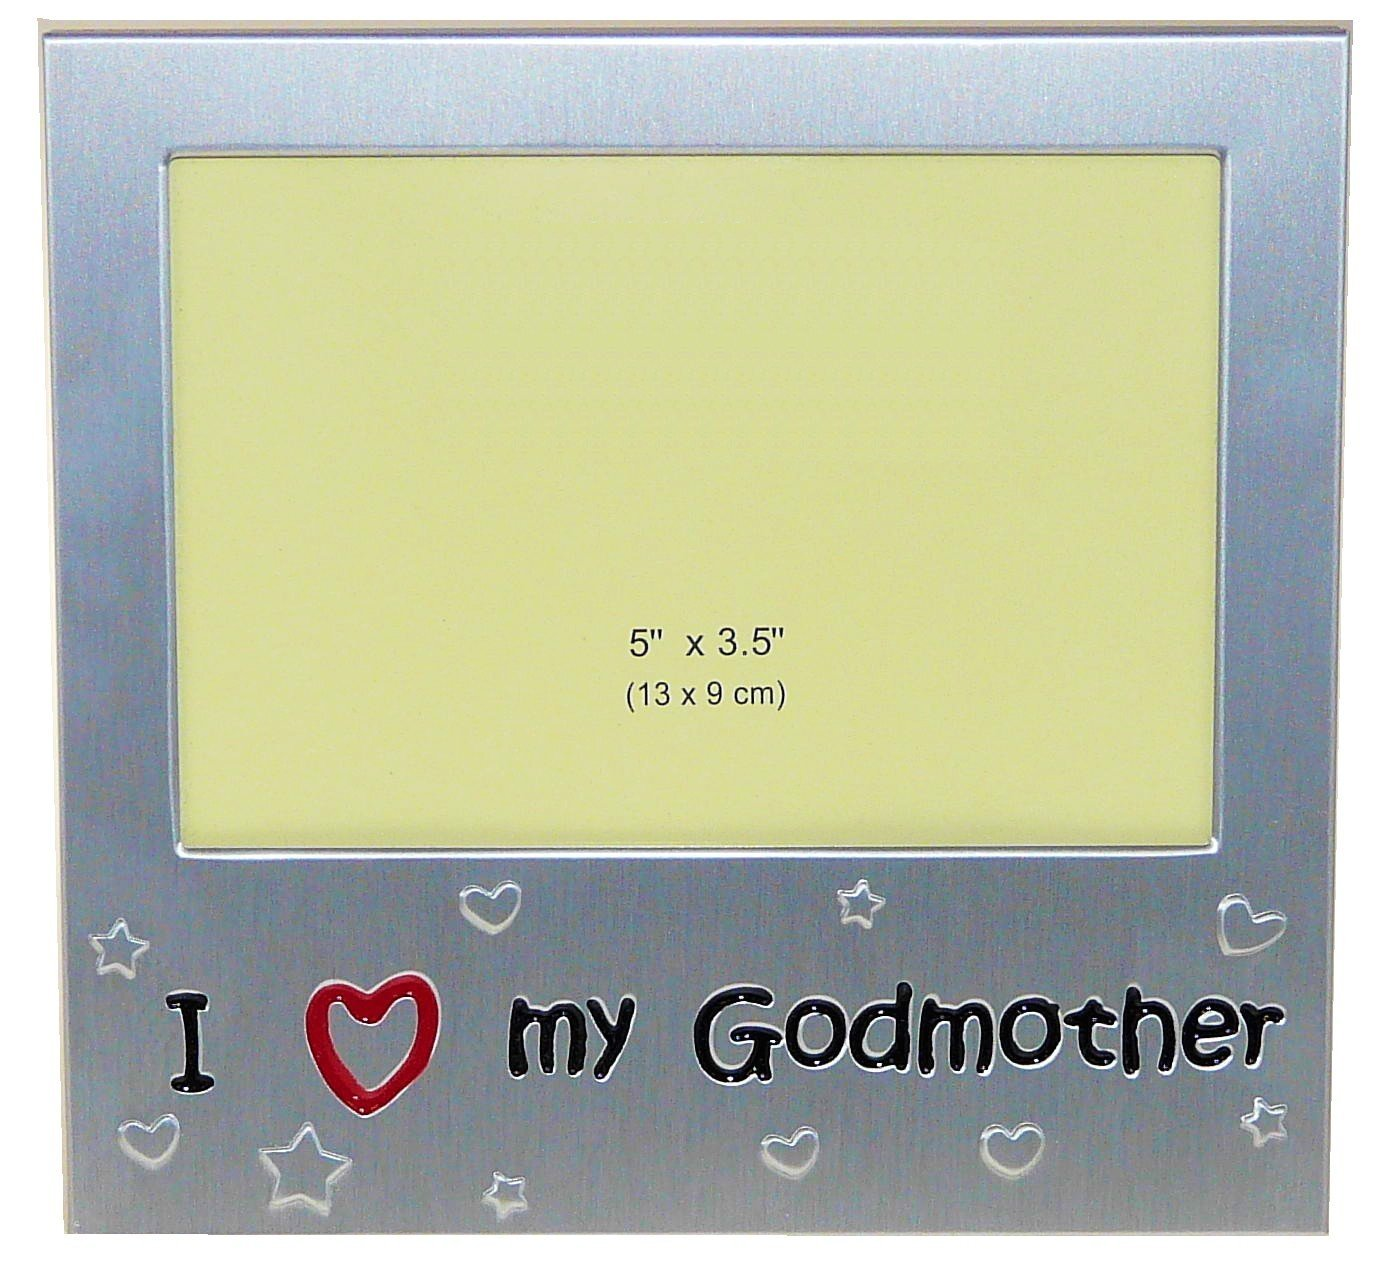 Amazon i love my godmother expressions photo picture amazon i love my godmother expressions photo picture frame gift 5 x 35 brushed aluminum satin silver color single frames jeuxipadfo Image collections